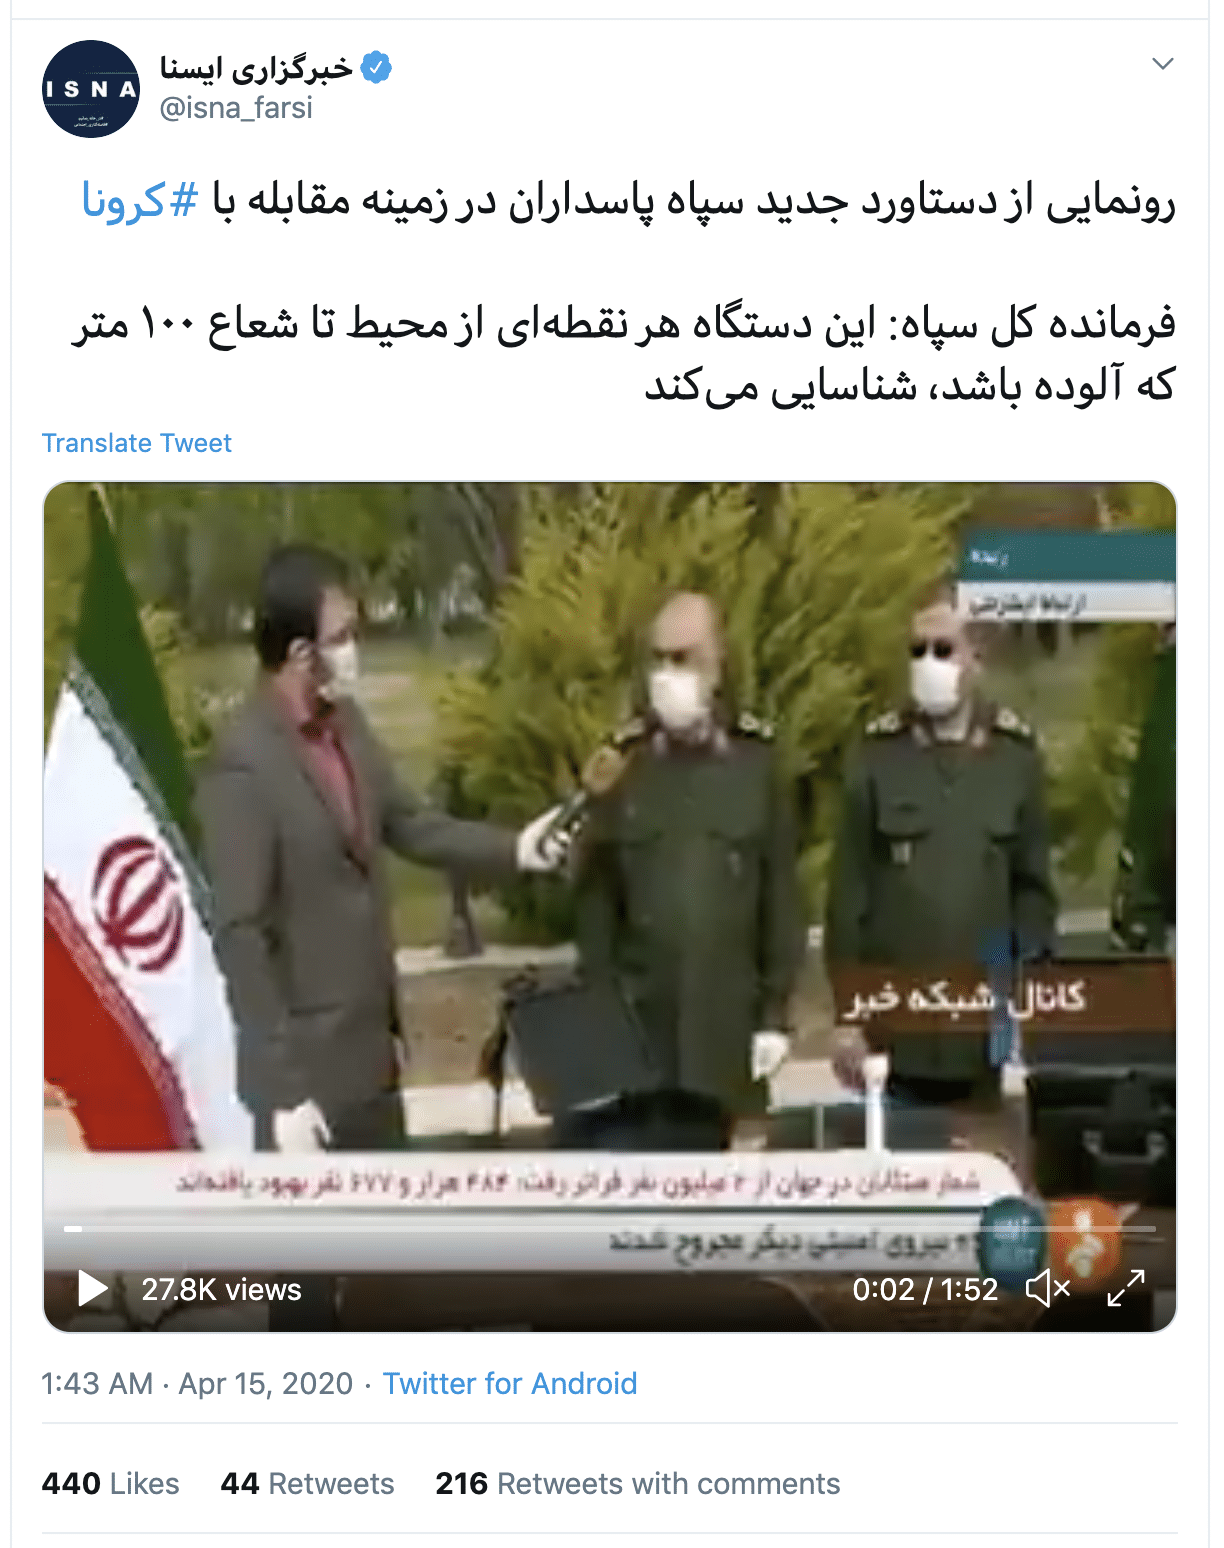 An example of disinformation spreading in Iran.